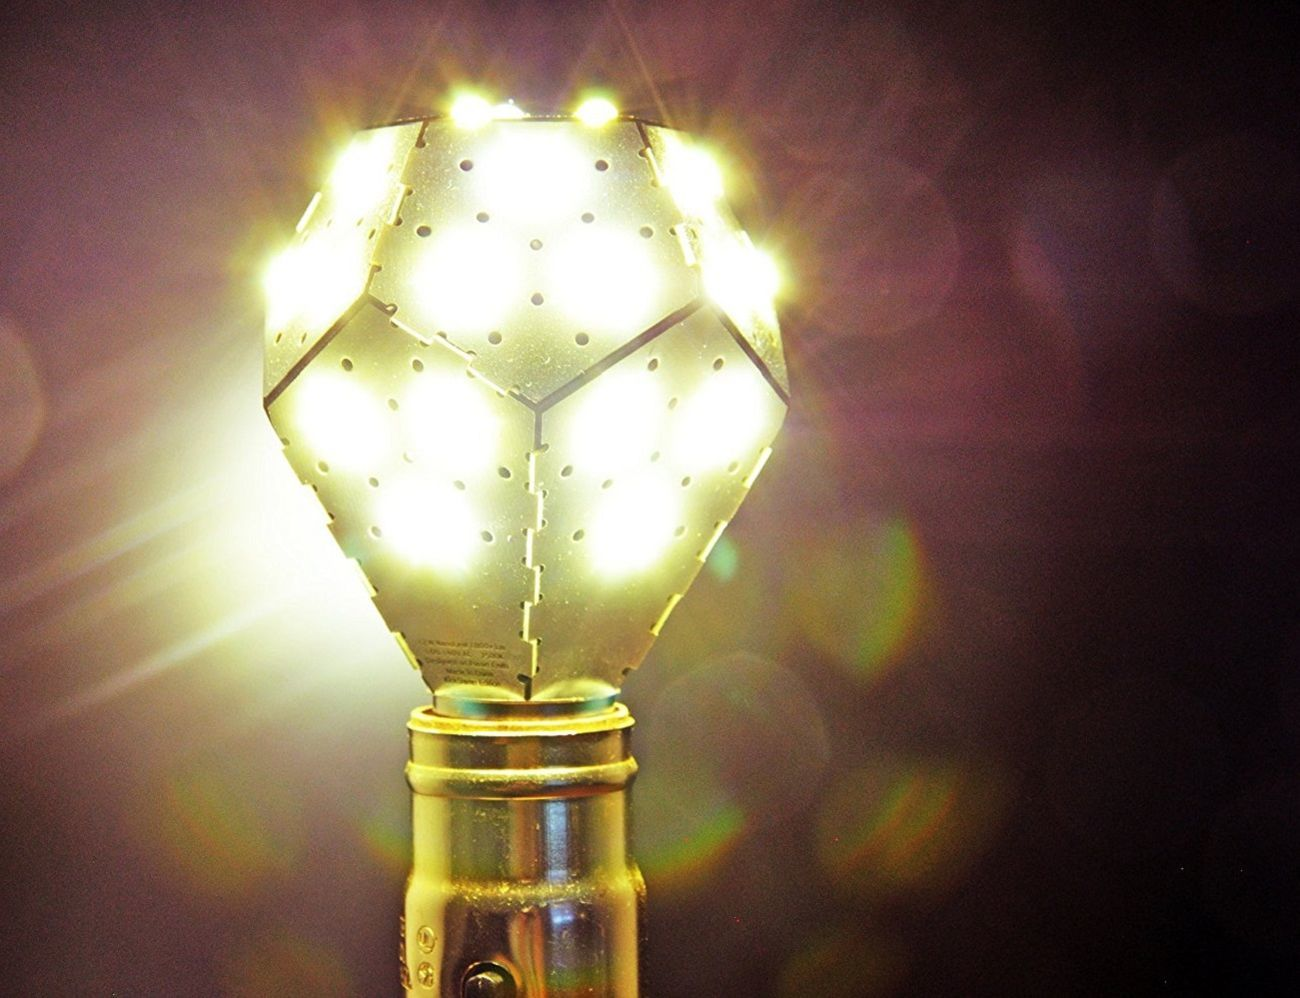 Nanoleaf Energy-Saving LED Light Bulb